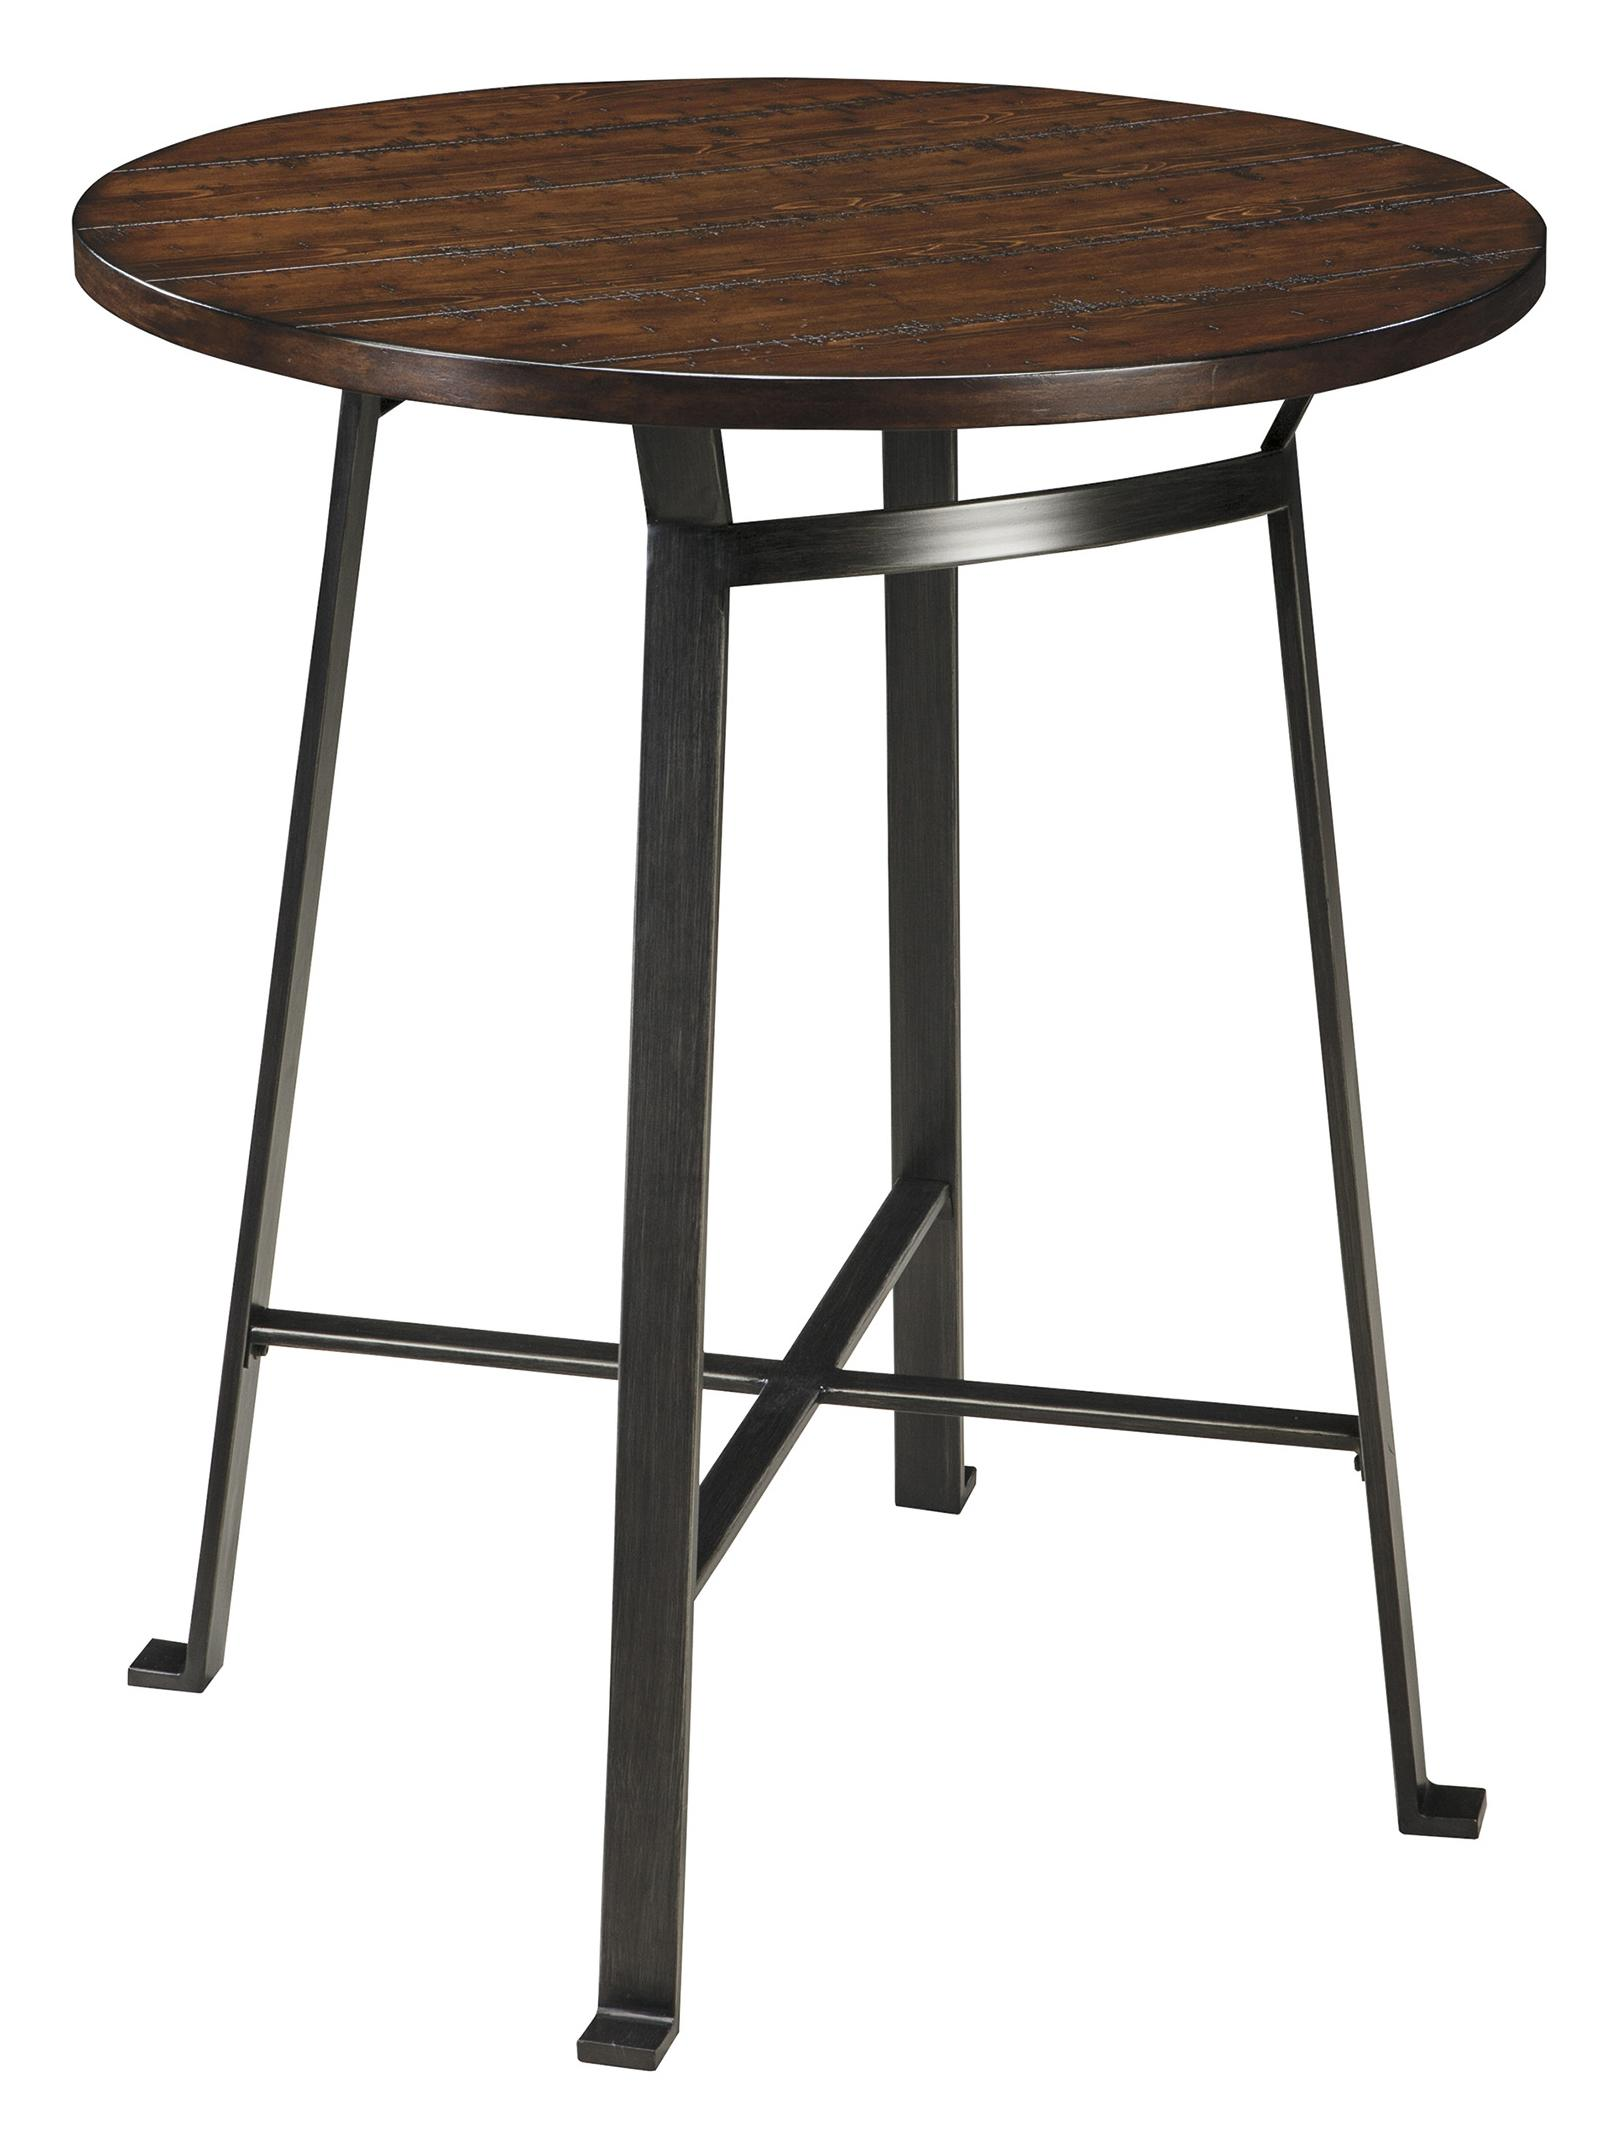 aware any bar style dining room table the measurements the